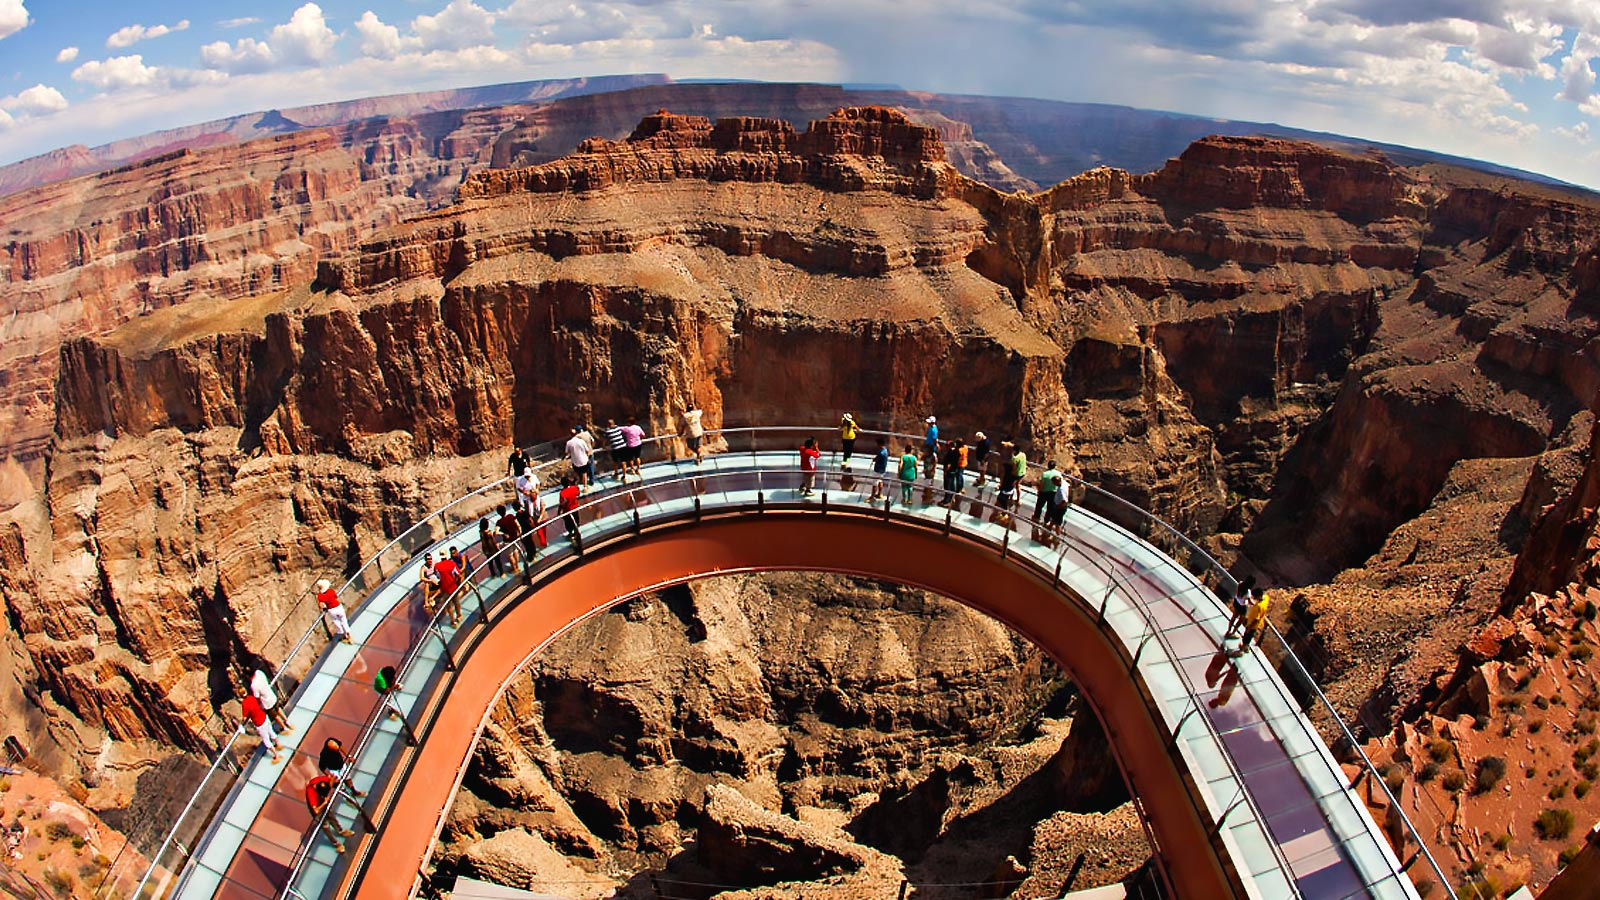 Private Grand Canyon Helicopter Flight and VIP Hualapai Ambassador Guided Tour including Skywalk – $4750